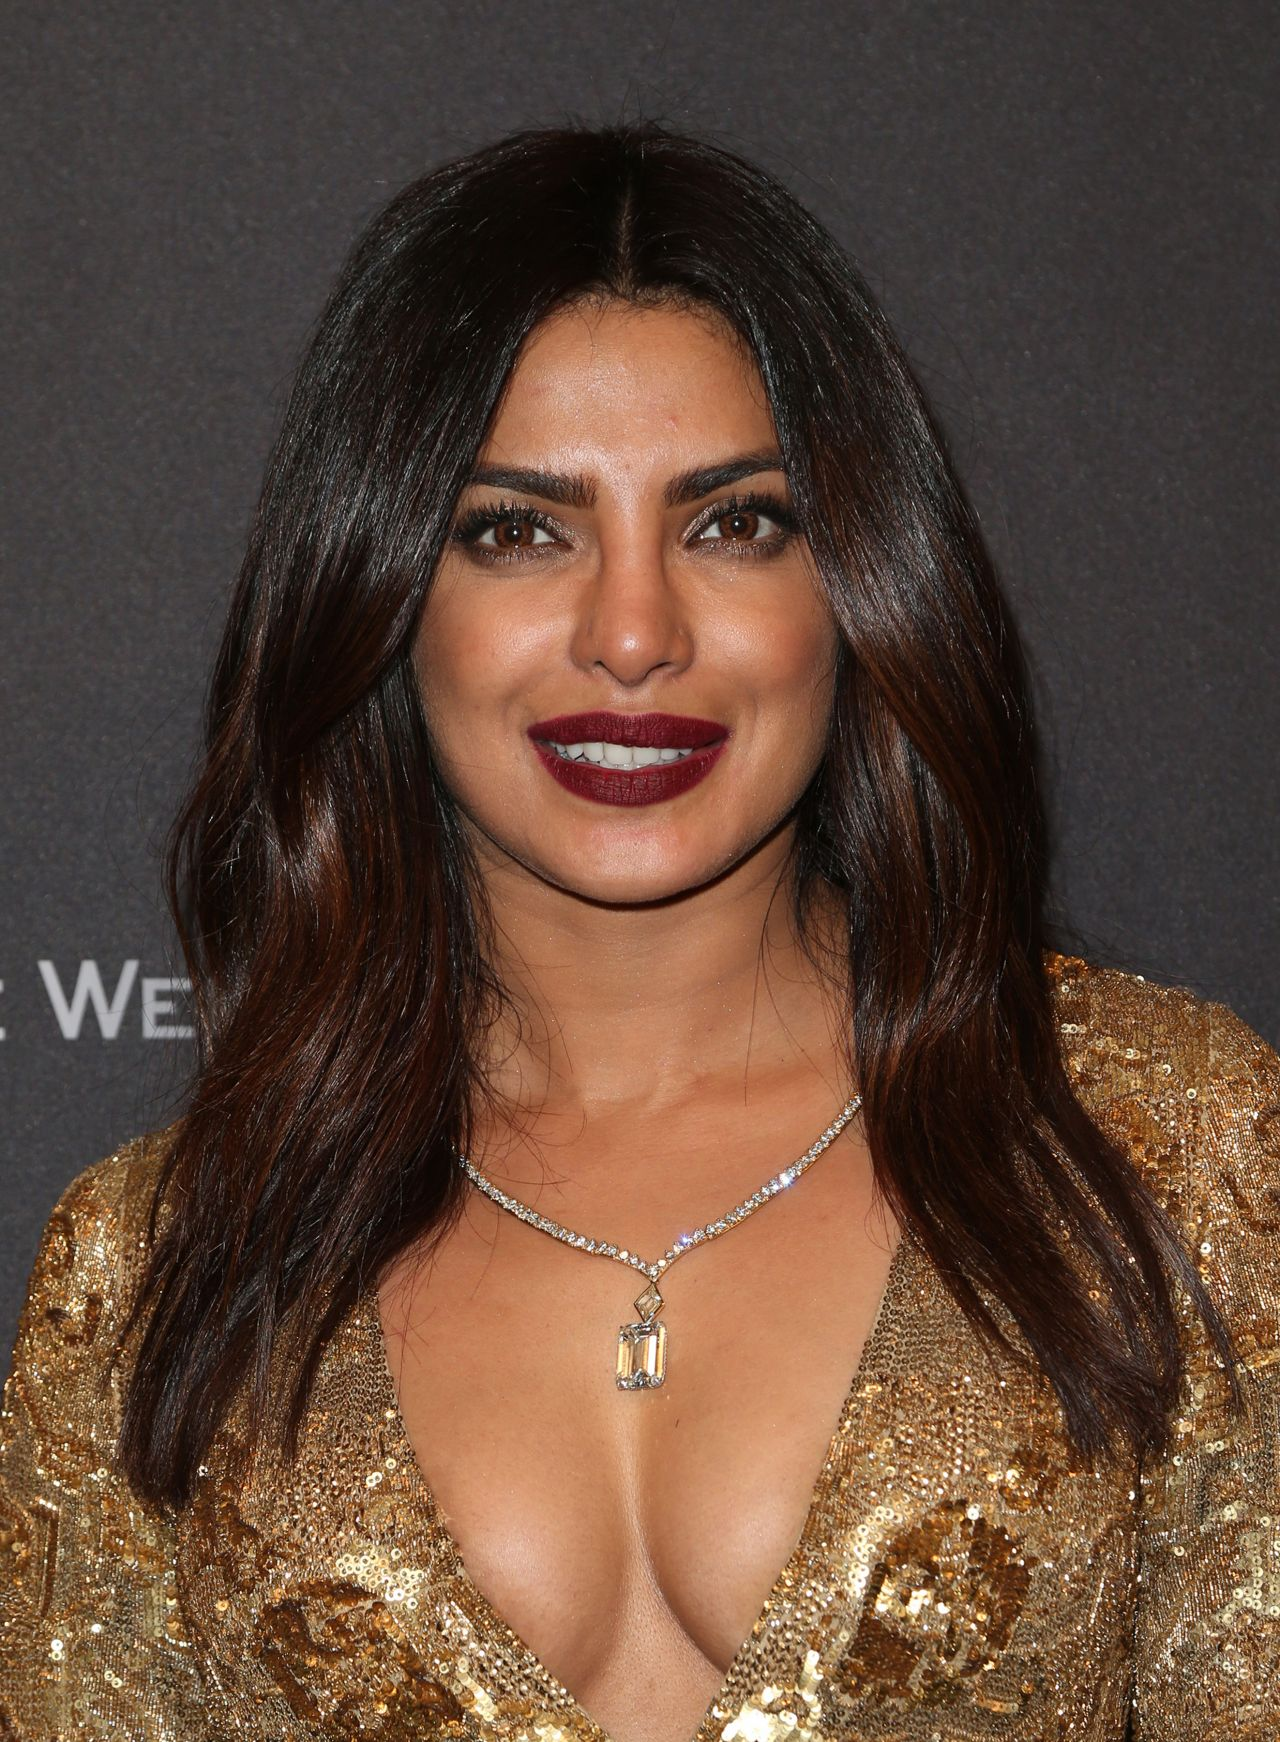 priyanka chopra - photo #12